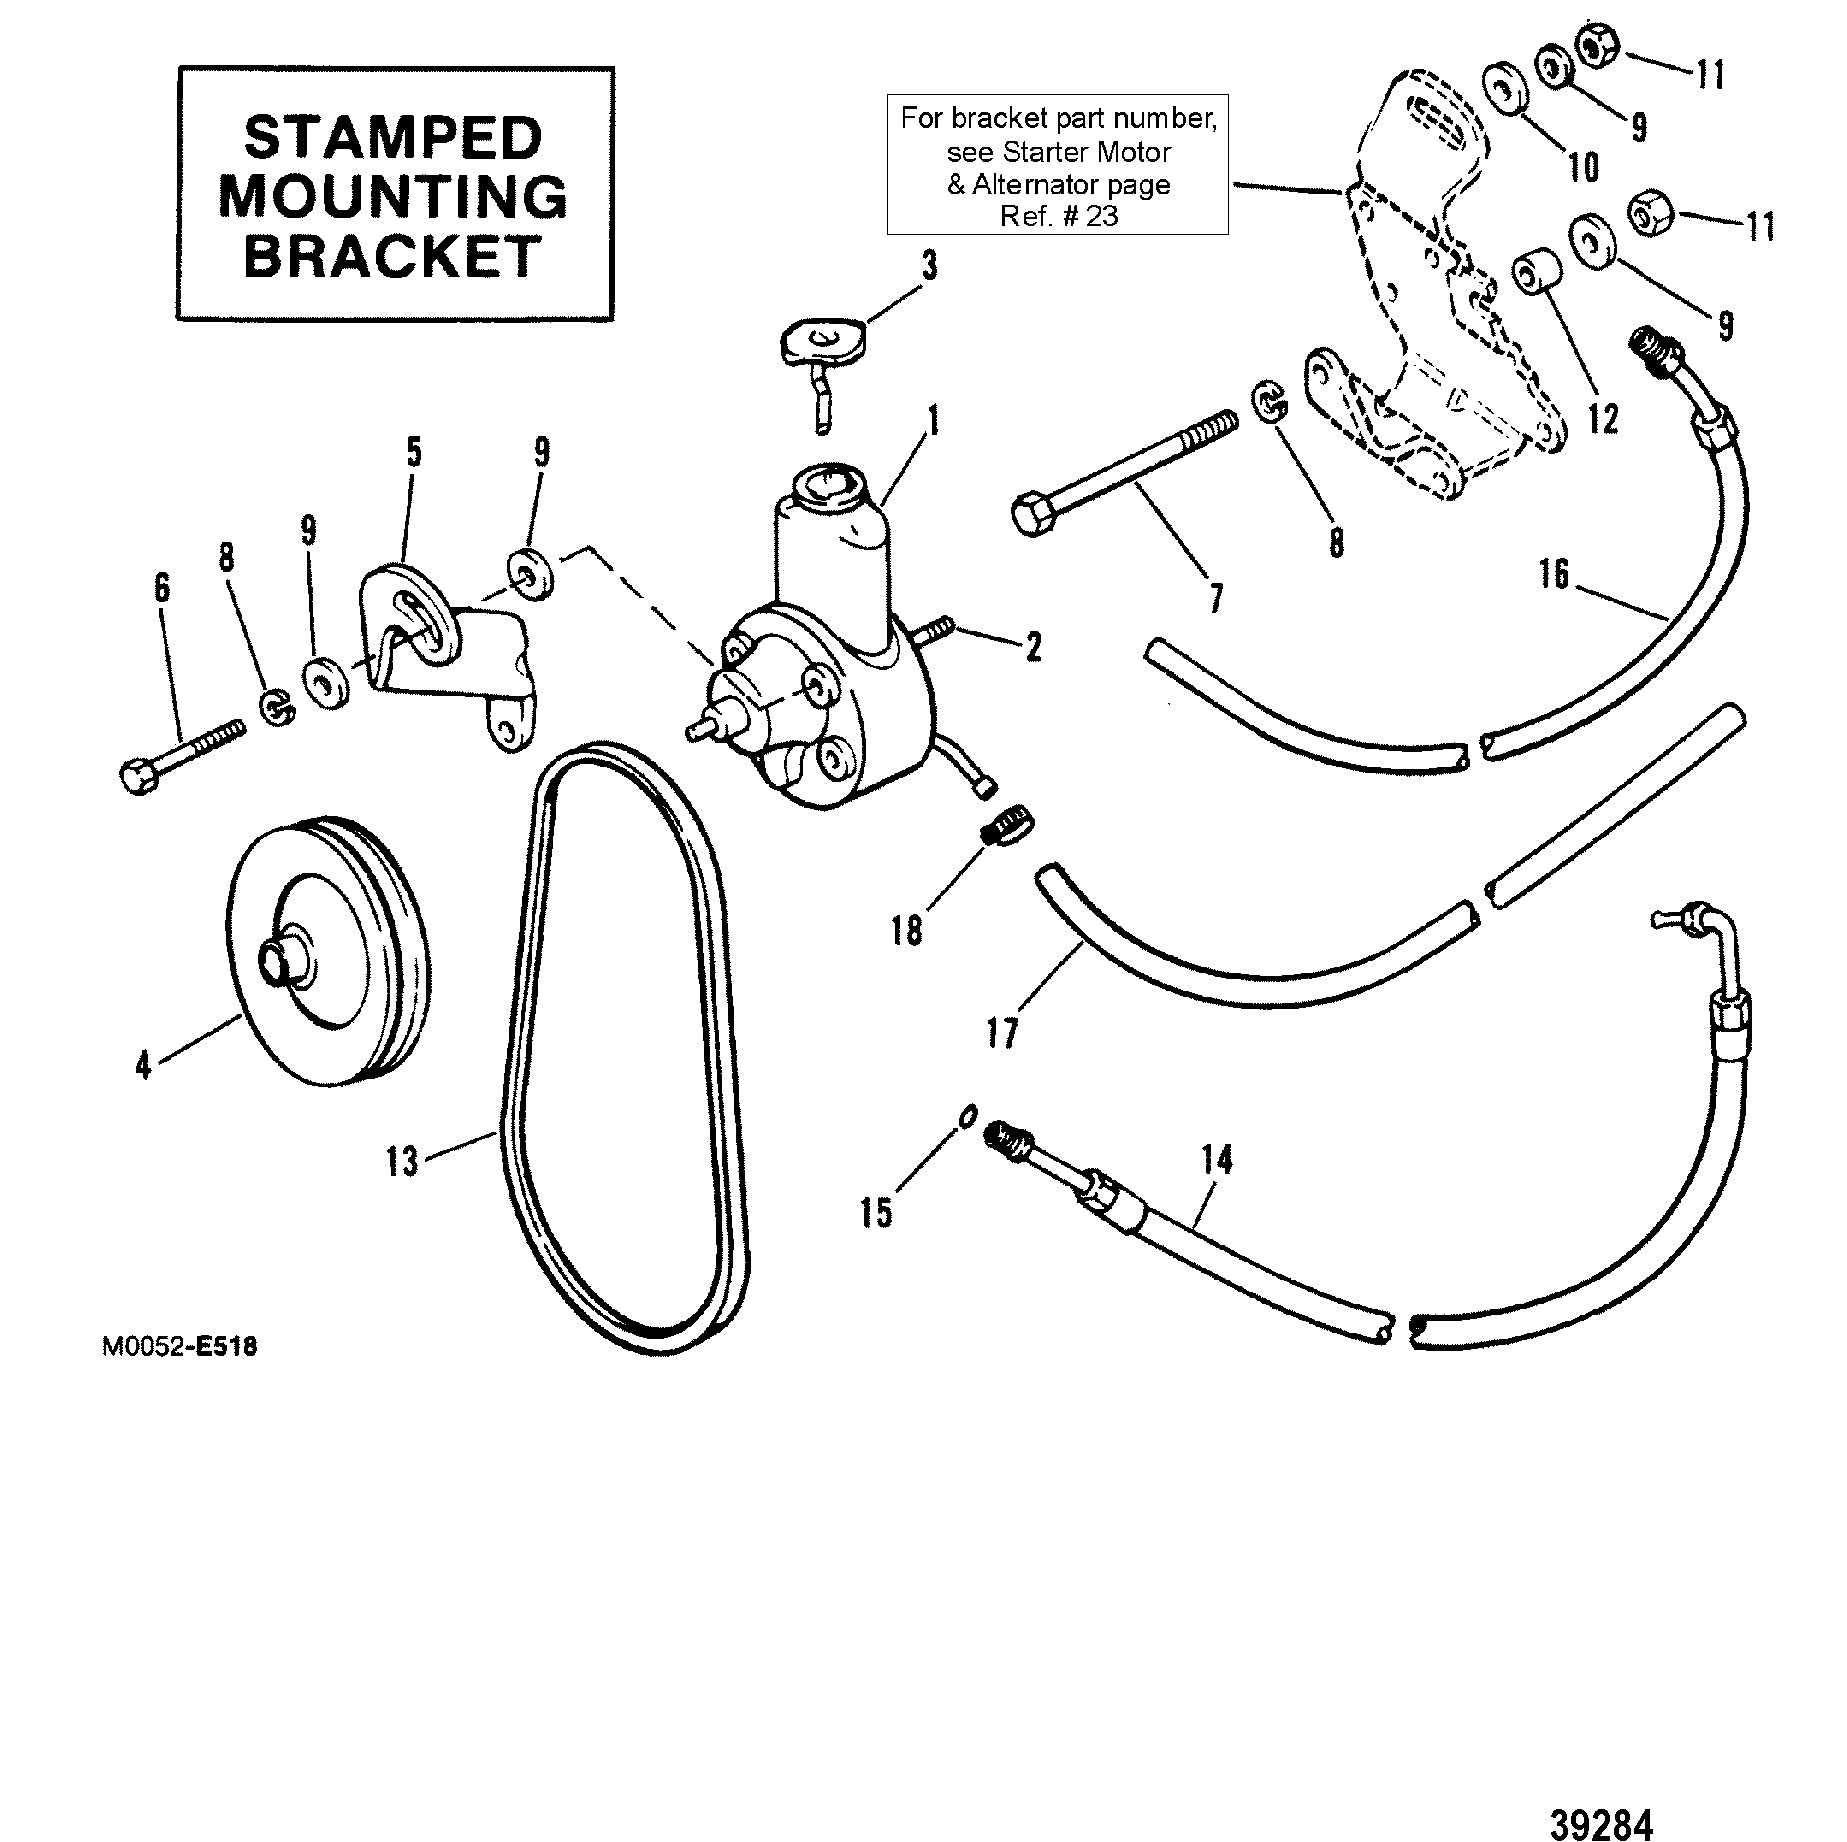 Power Steering Components Stamped Mounting Bracket For